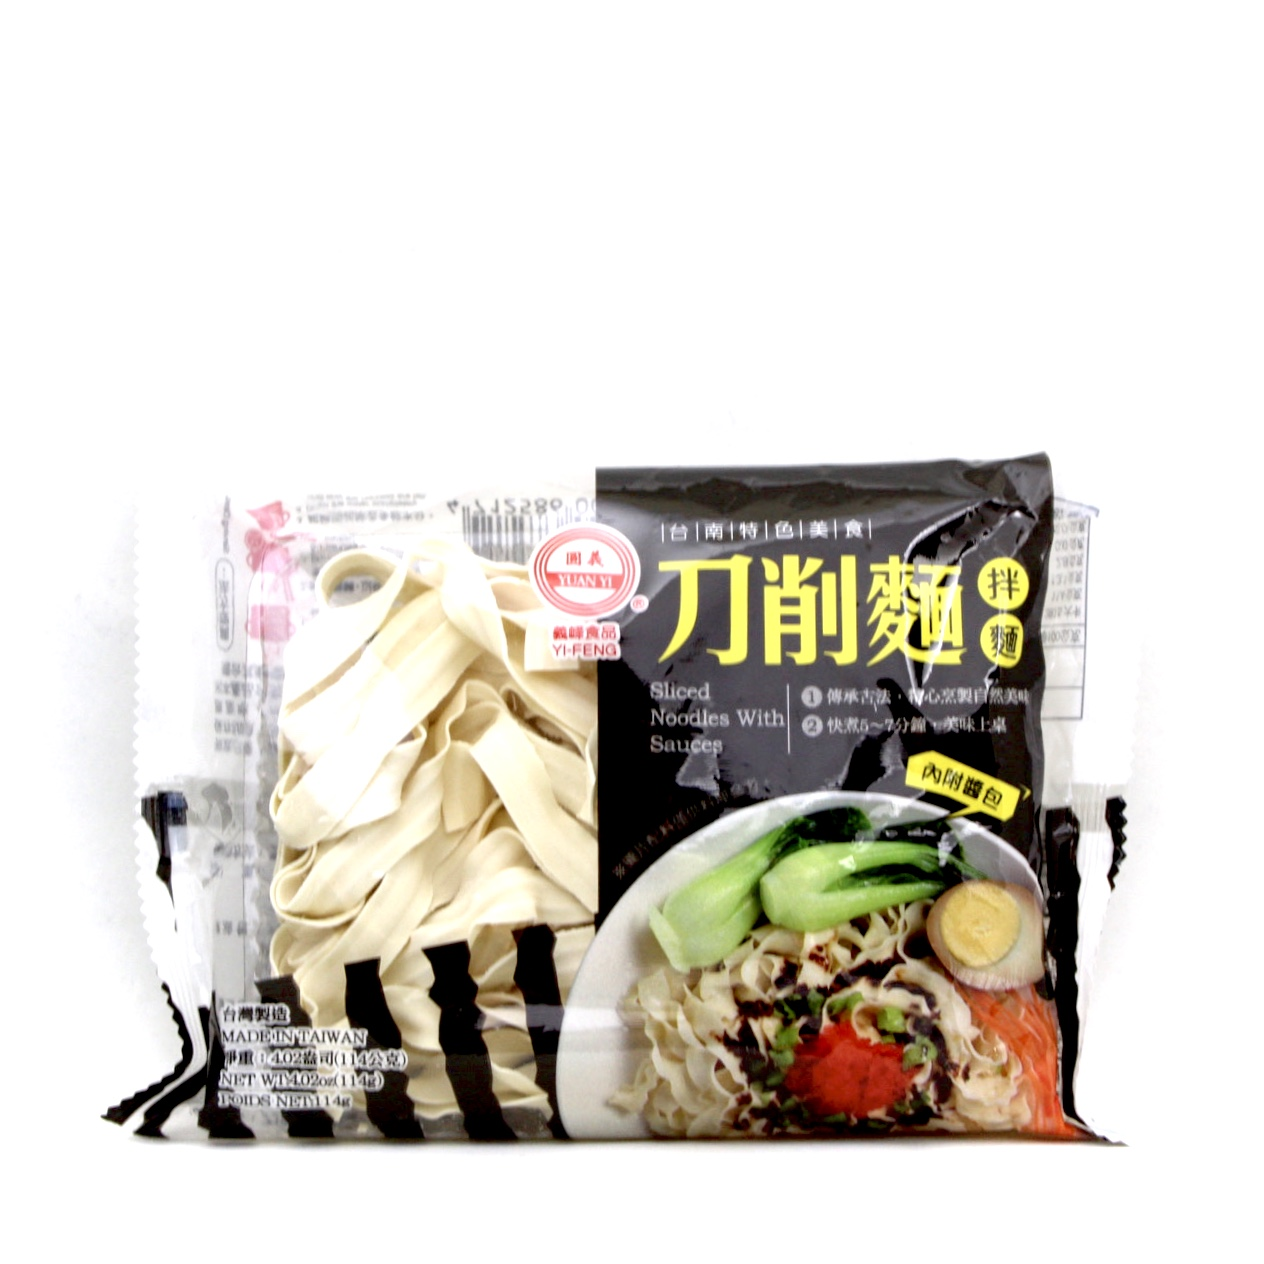 YI FENG SLICED NOODLE WITH SAUCE ONION 114g